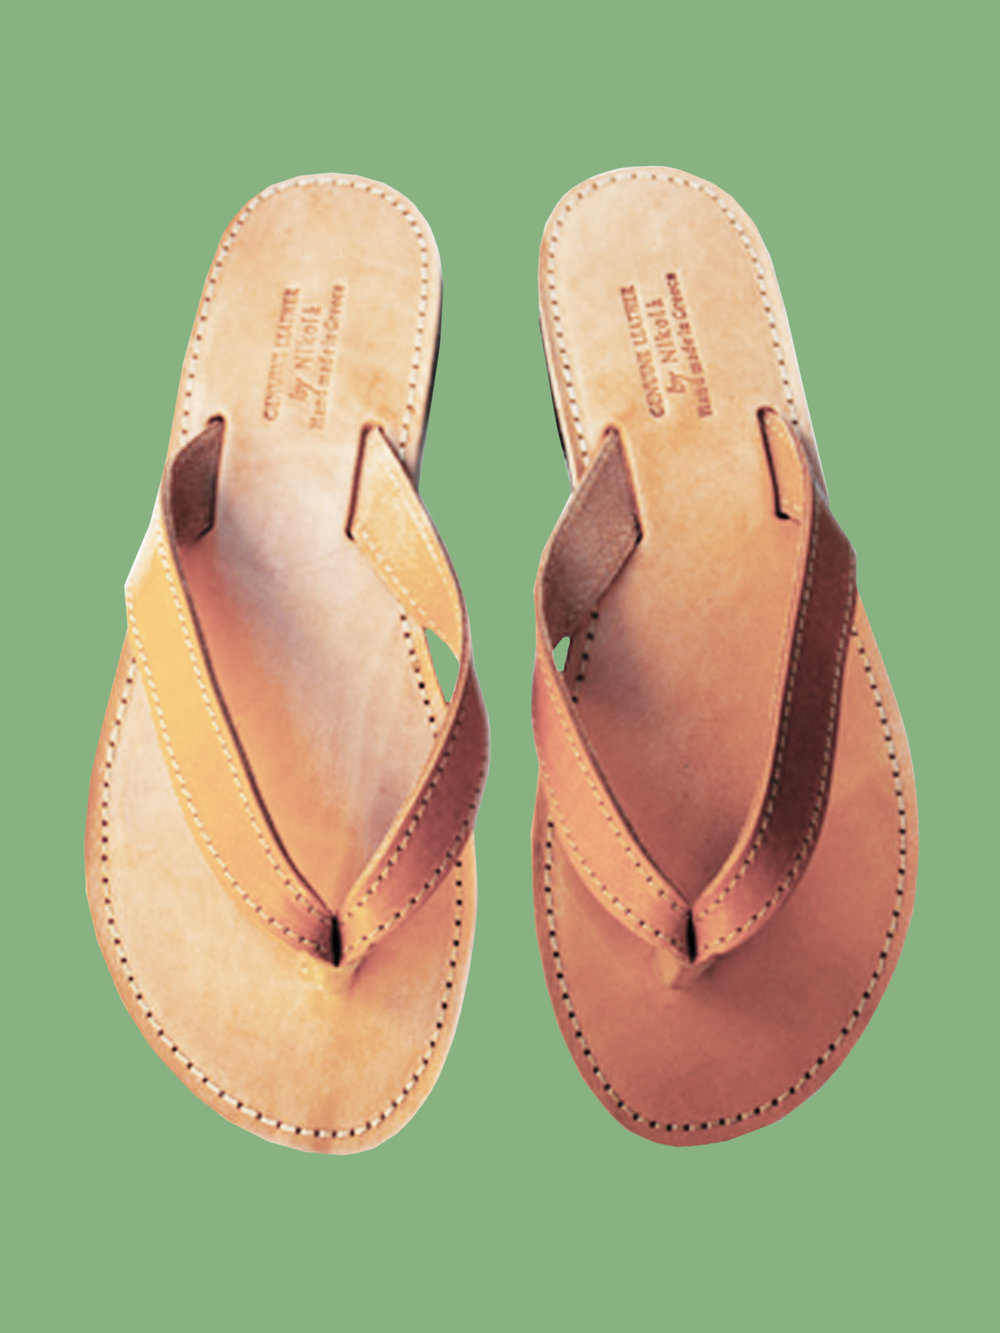 Salt Supply_Men's Flip Flop.jpg